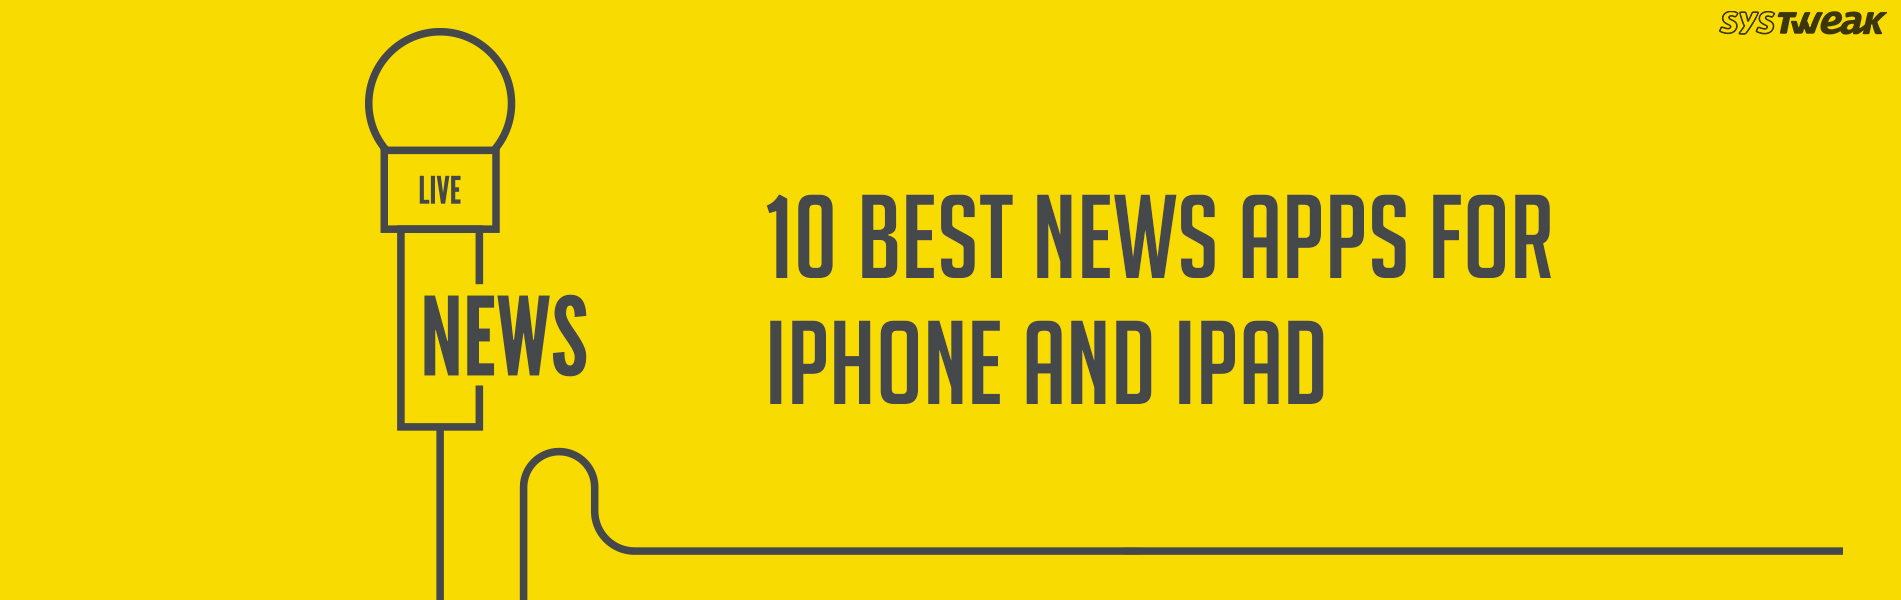 10 Best News Apps For iPhone And iPad